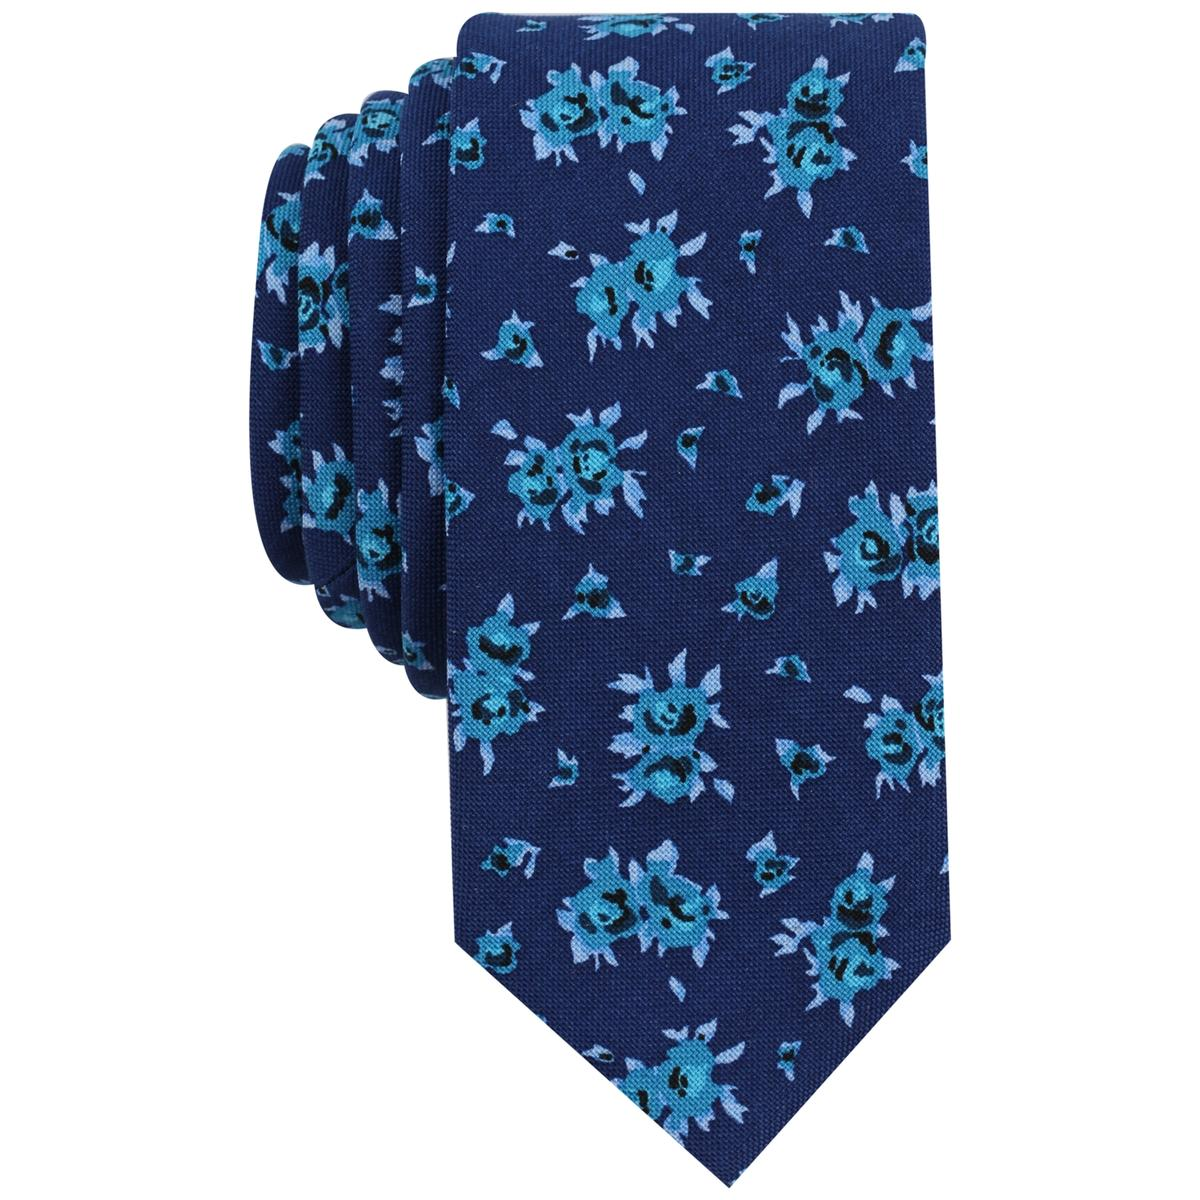 cfb0e631c0 Details about Bar III Mens Cana Blue Floral Print Slim Business Neck Tie  O S BHFO 0603